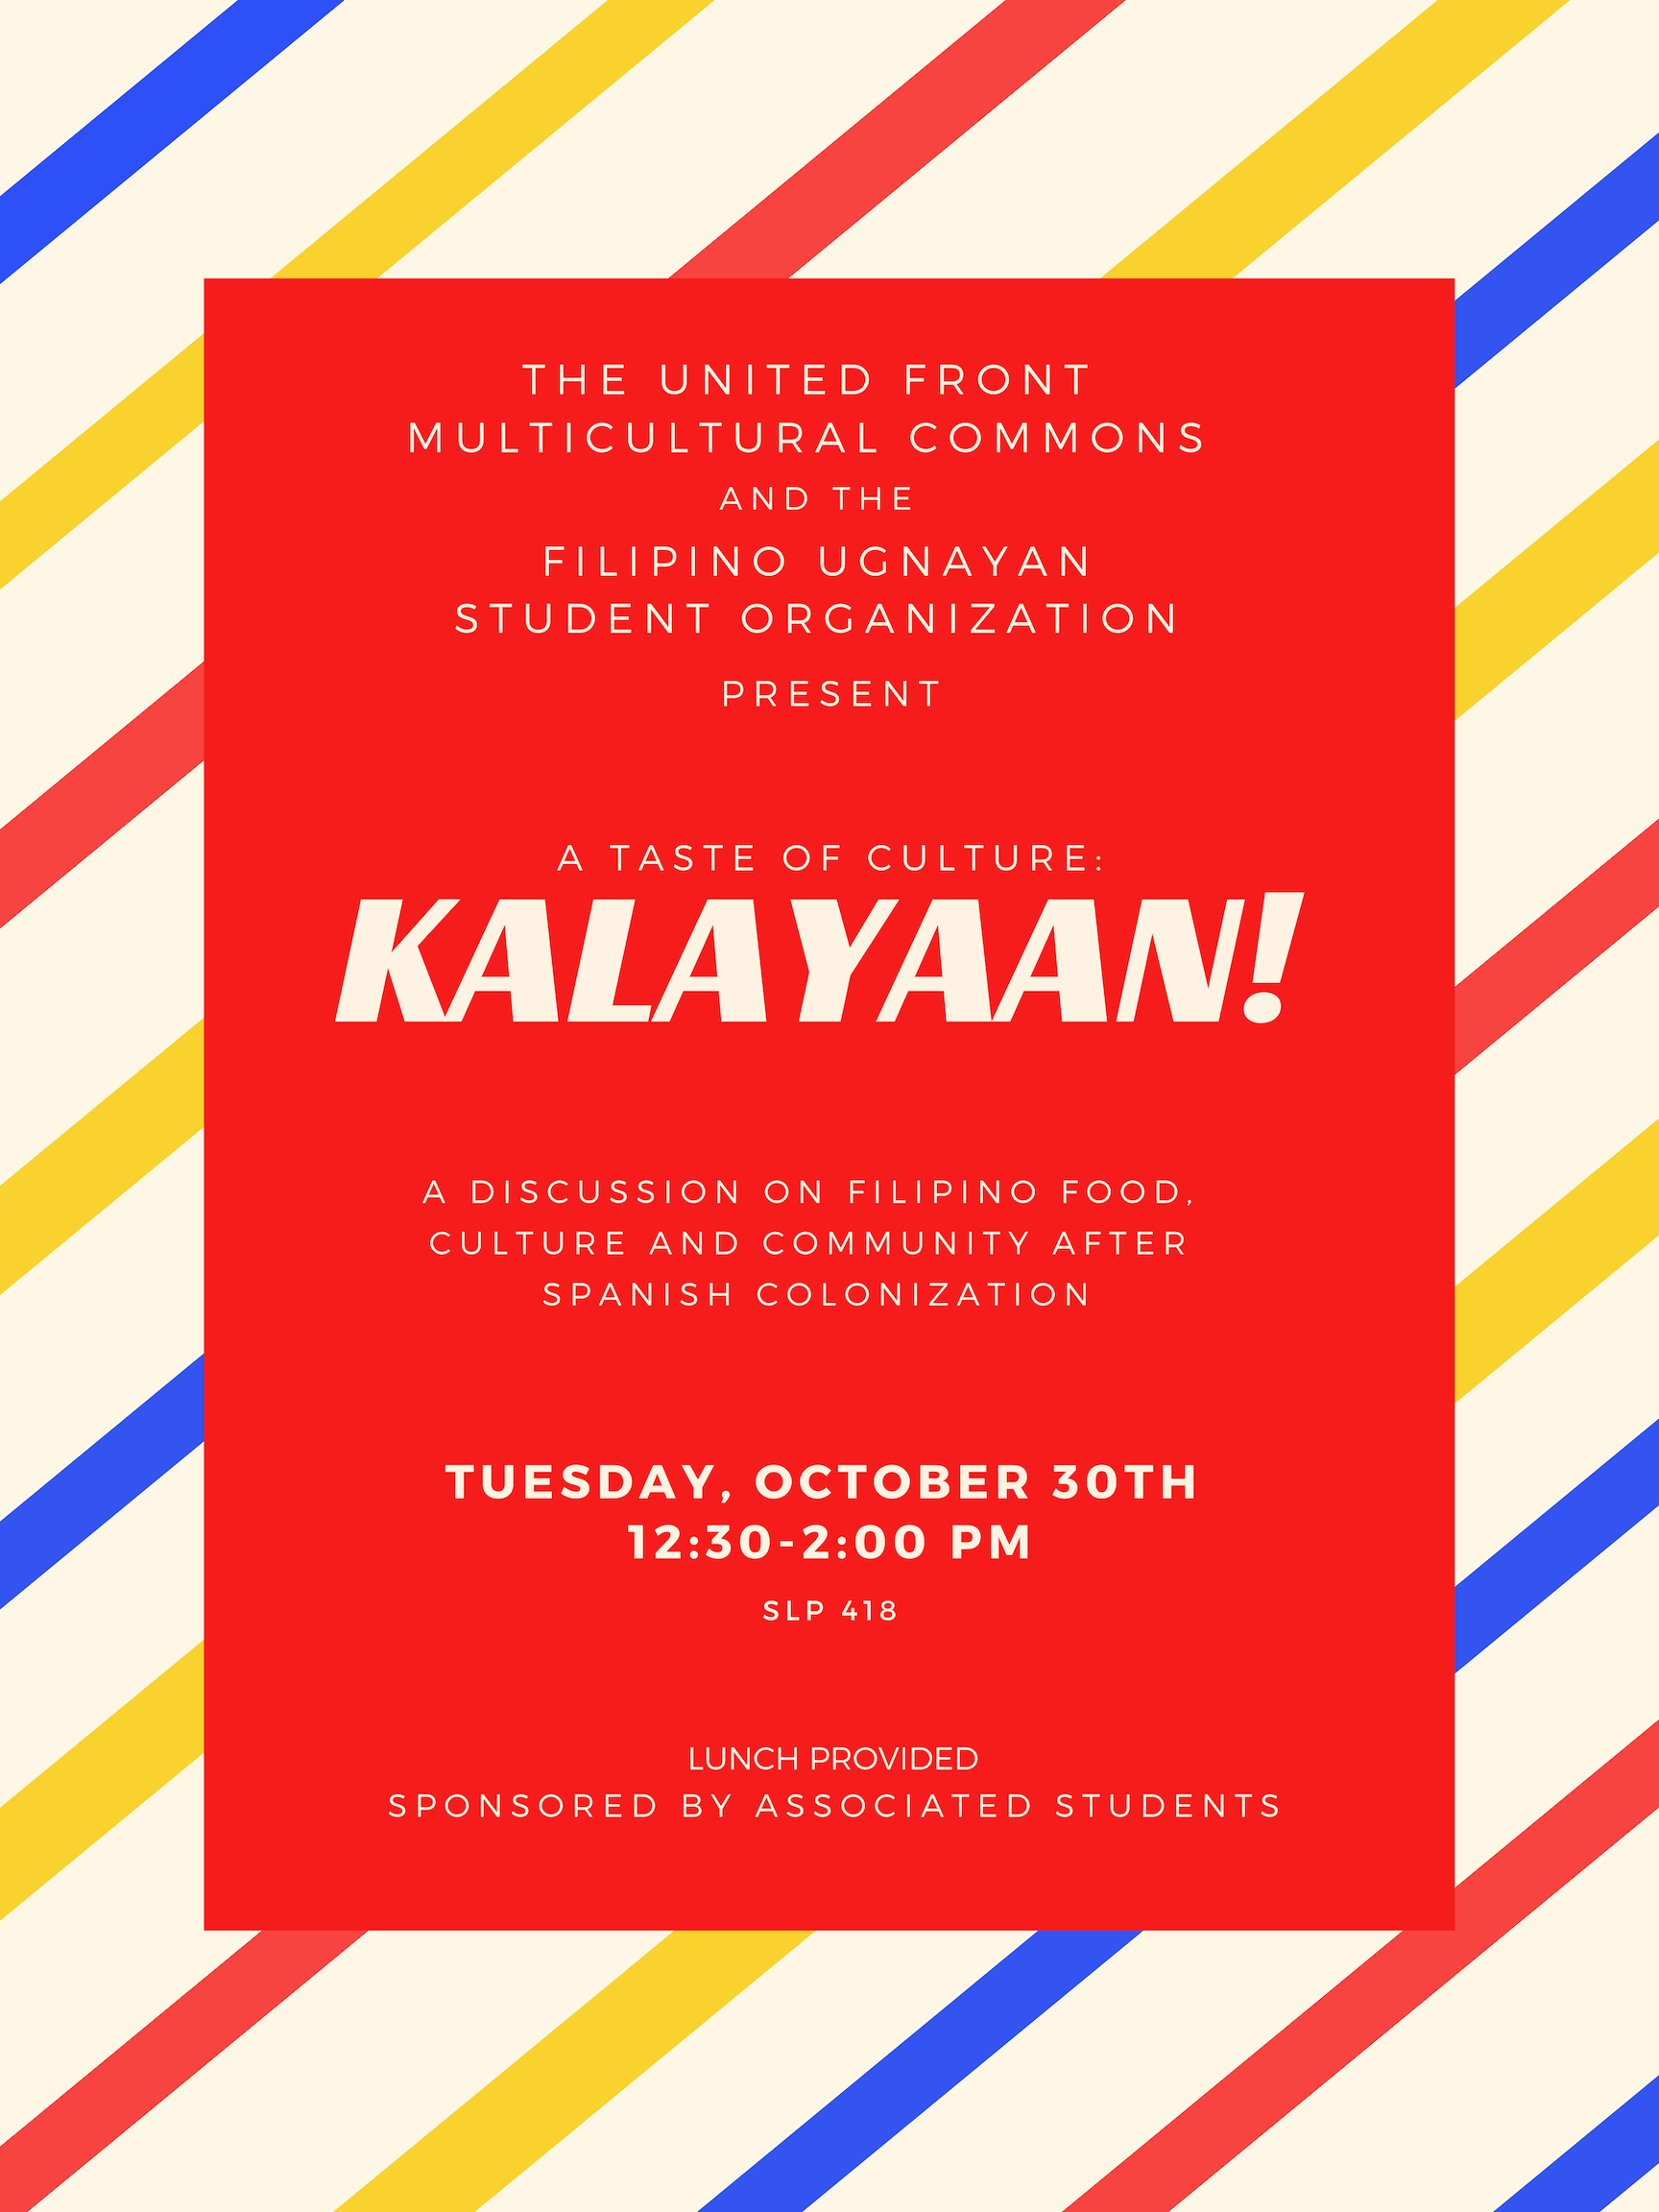 Flyer of A Taste of Culture: Kalayaan!